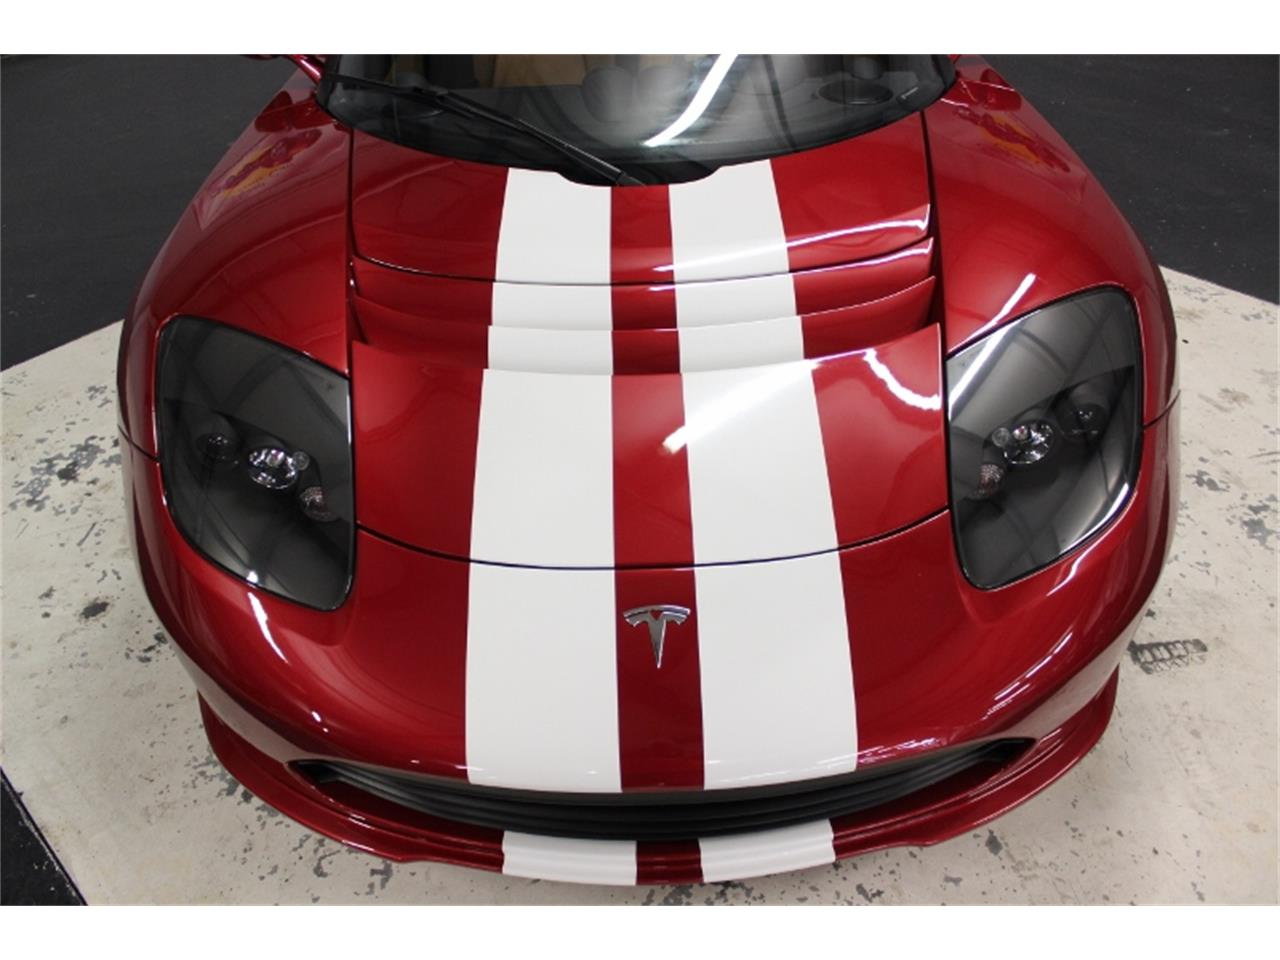 Large Picture of 2011 Roadster located in Lillington North Carolina - $70,000.00 - PUDM